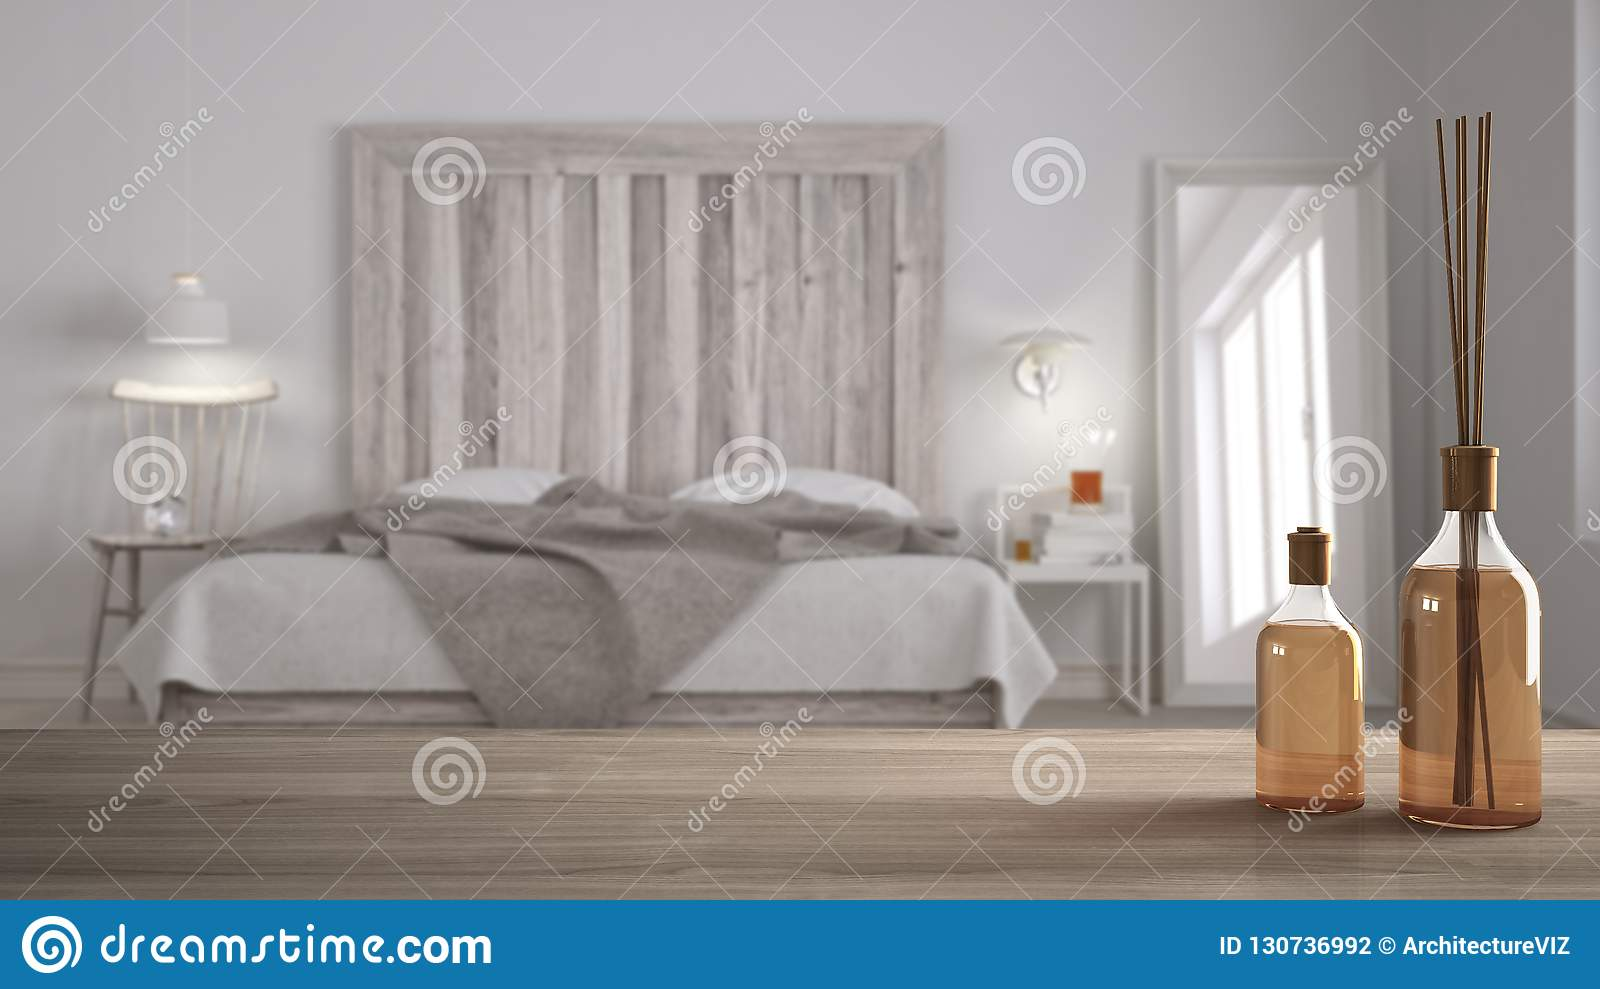 Wooden Table Top Or Shelf With Aromatic Sticks Bottles Over Blurred Scandinavian Bedroom With Homemade Headboard White Architectu Stock Photo Image Of Aromatic Headboard 130736992